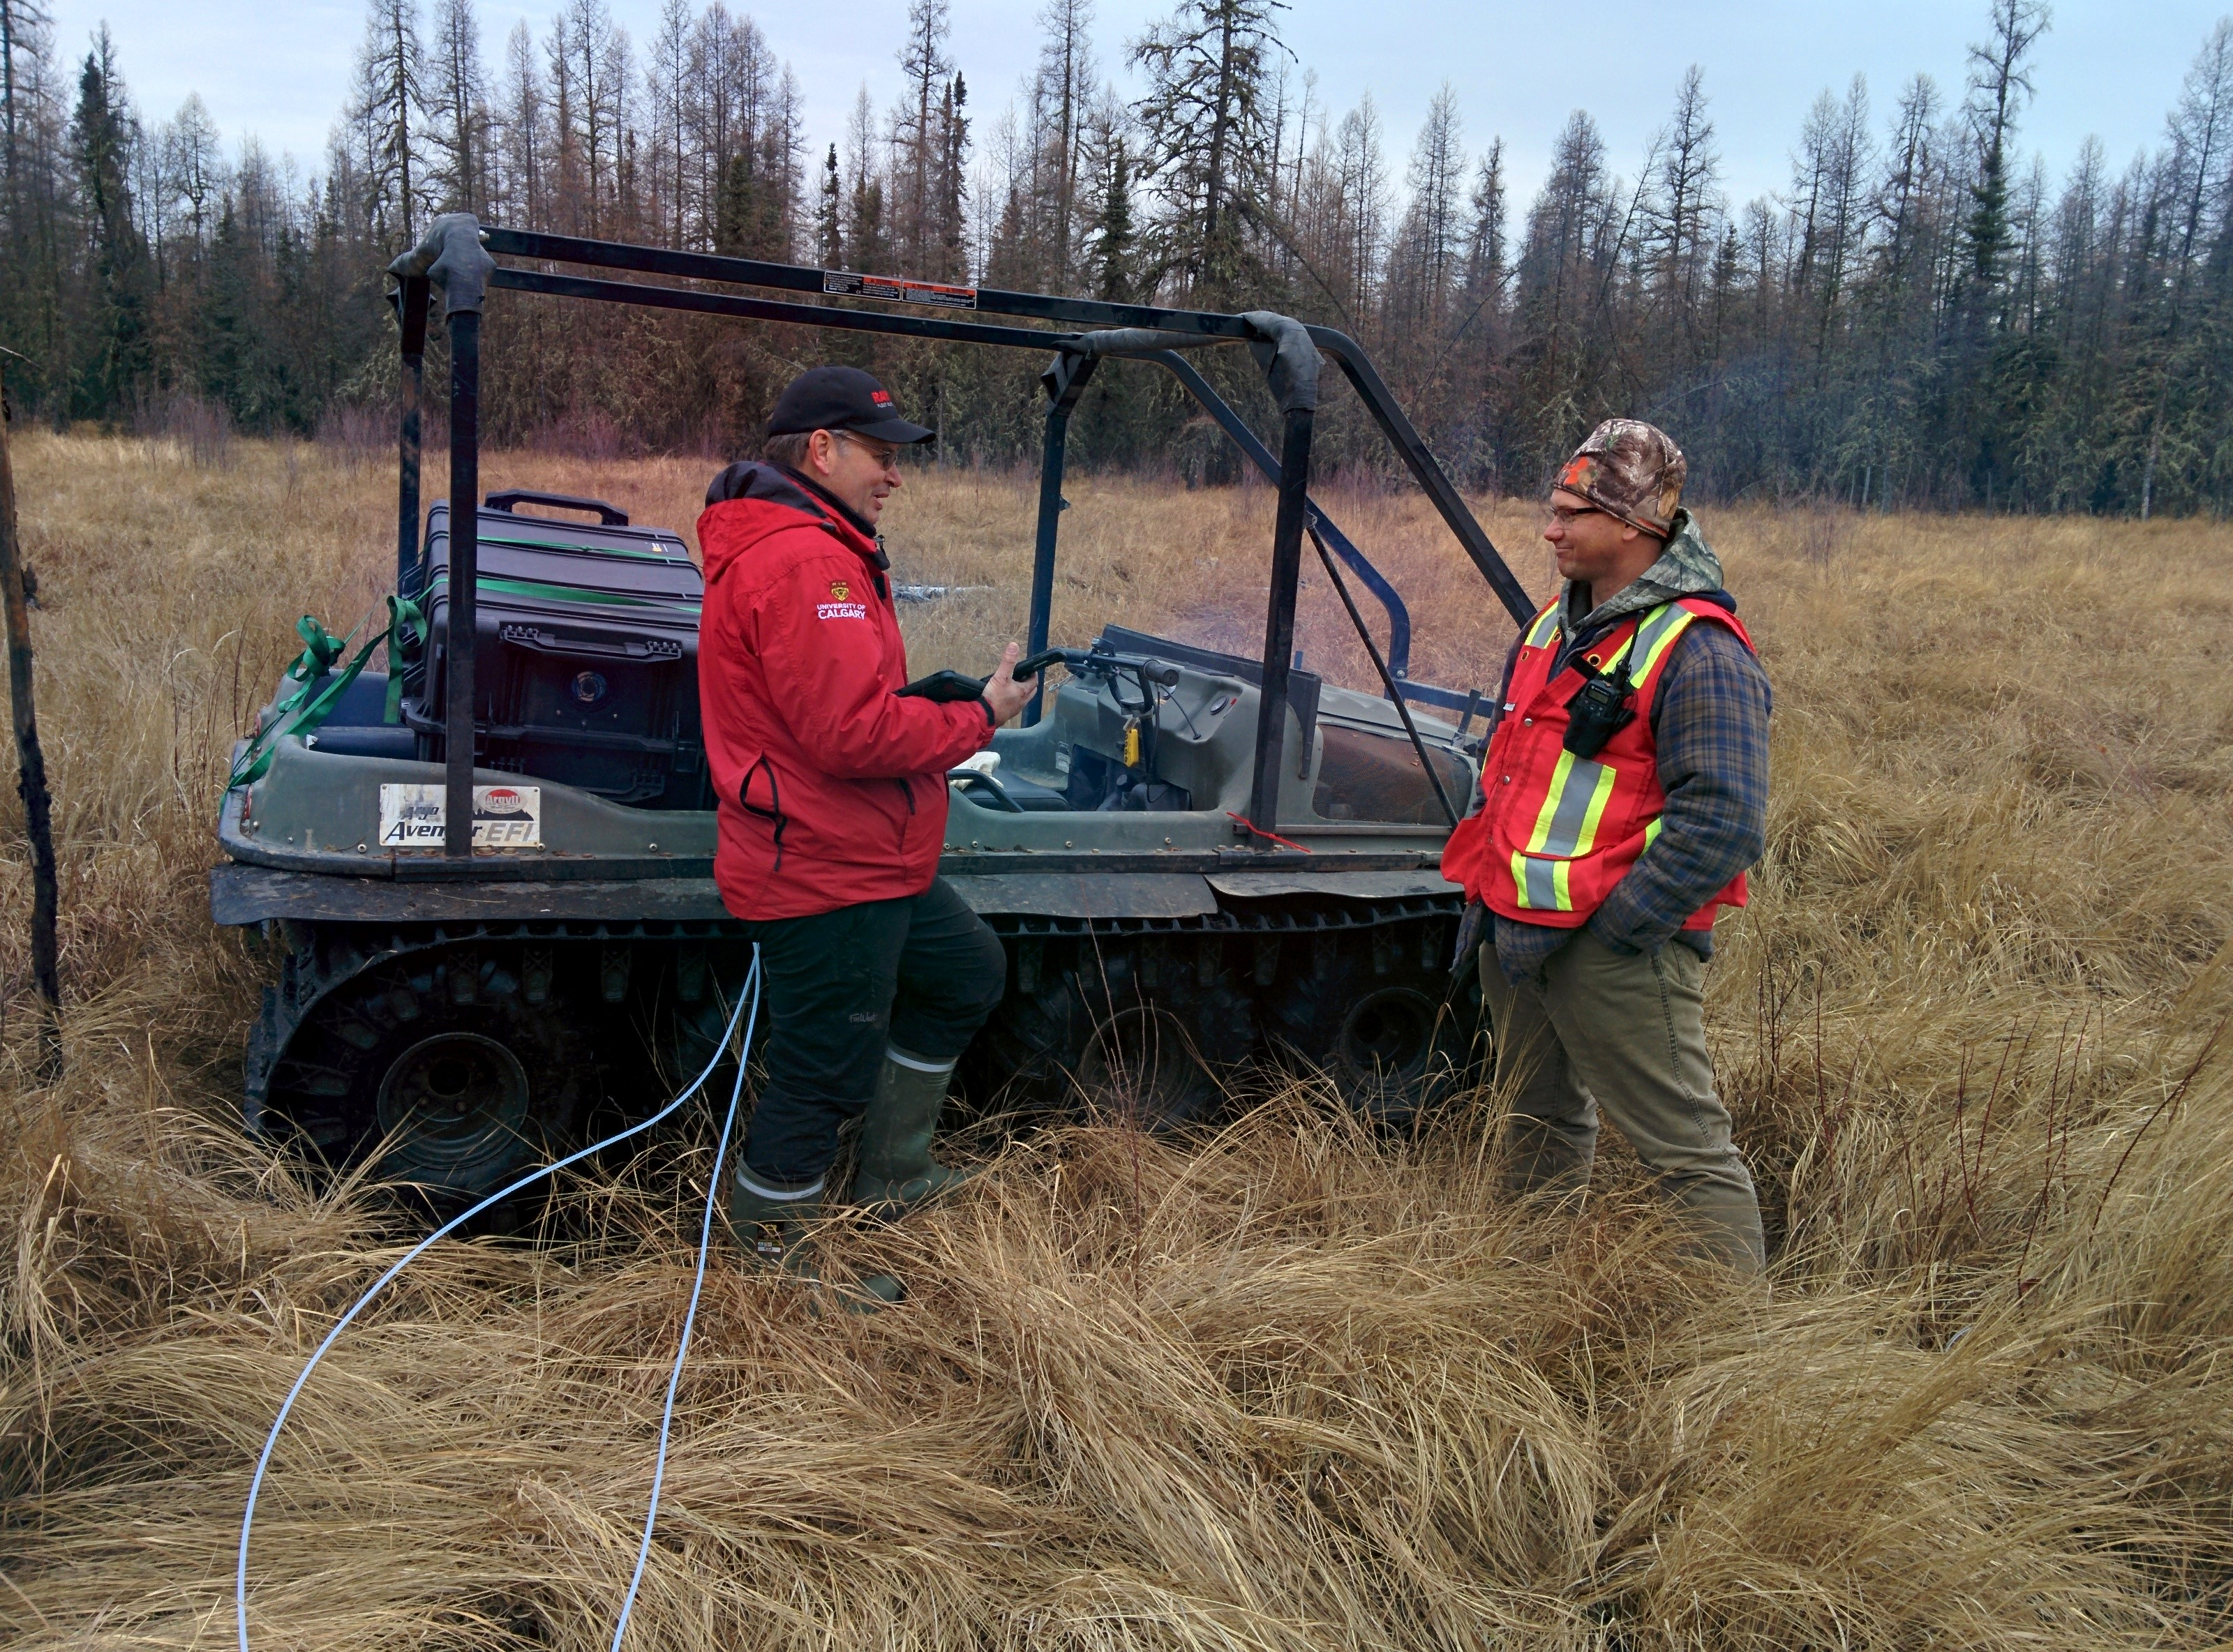 Two researchers stand beside the Argo, loaded with atmospheric leak detection technology, in a grassy, wetland in Christina Lake, Alberta.